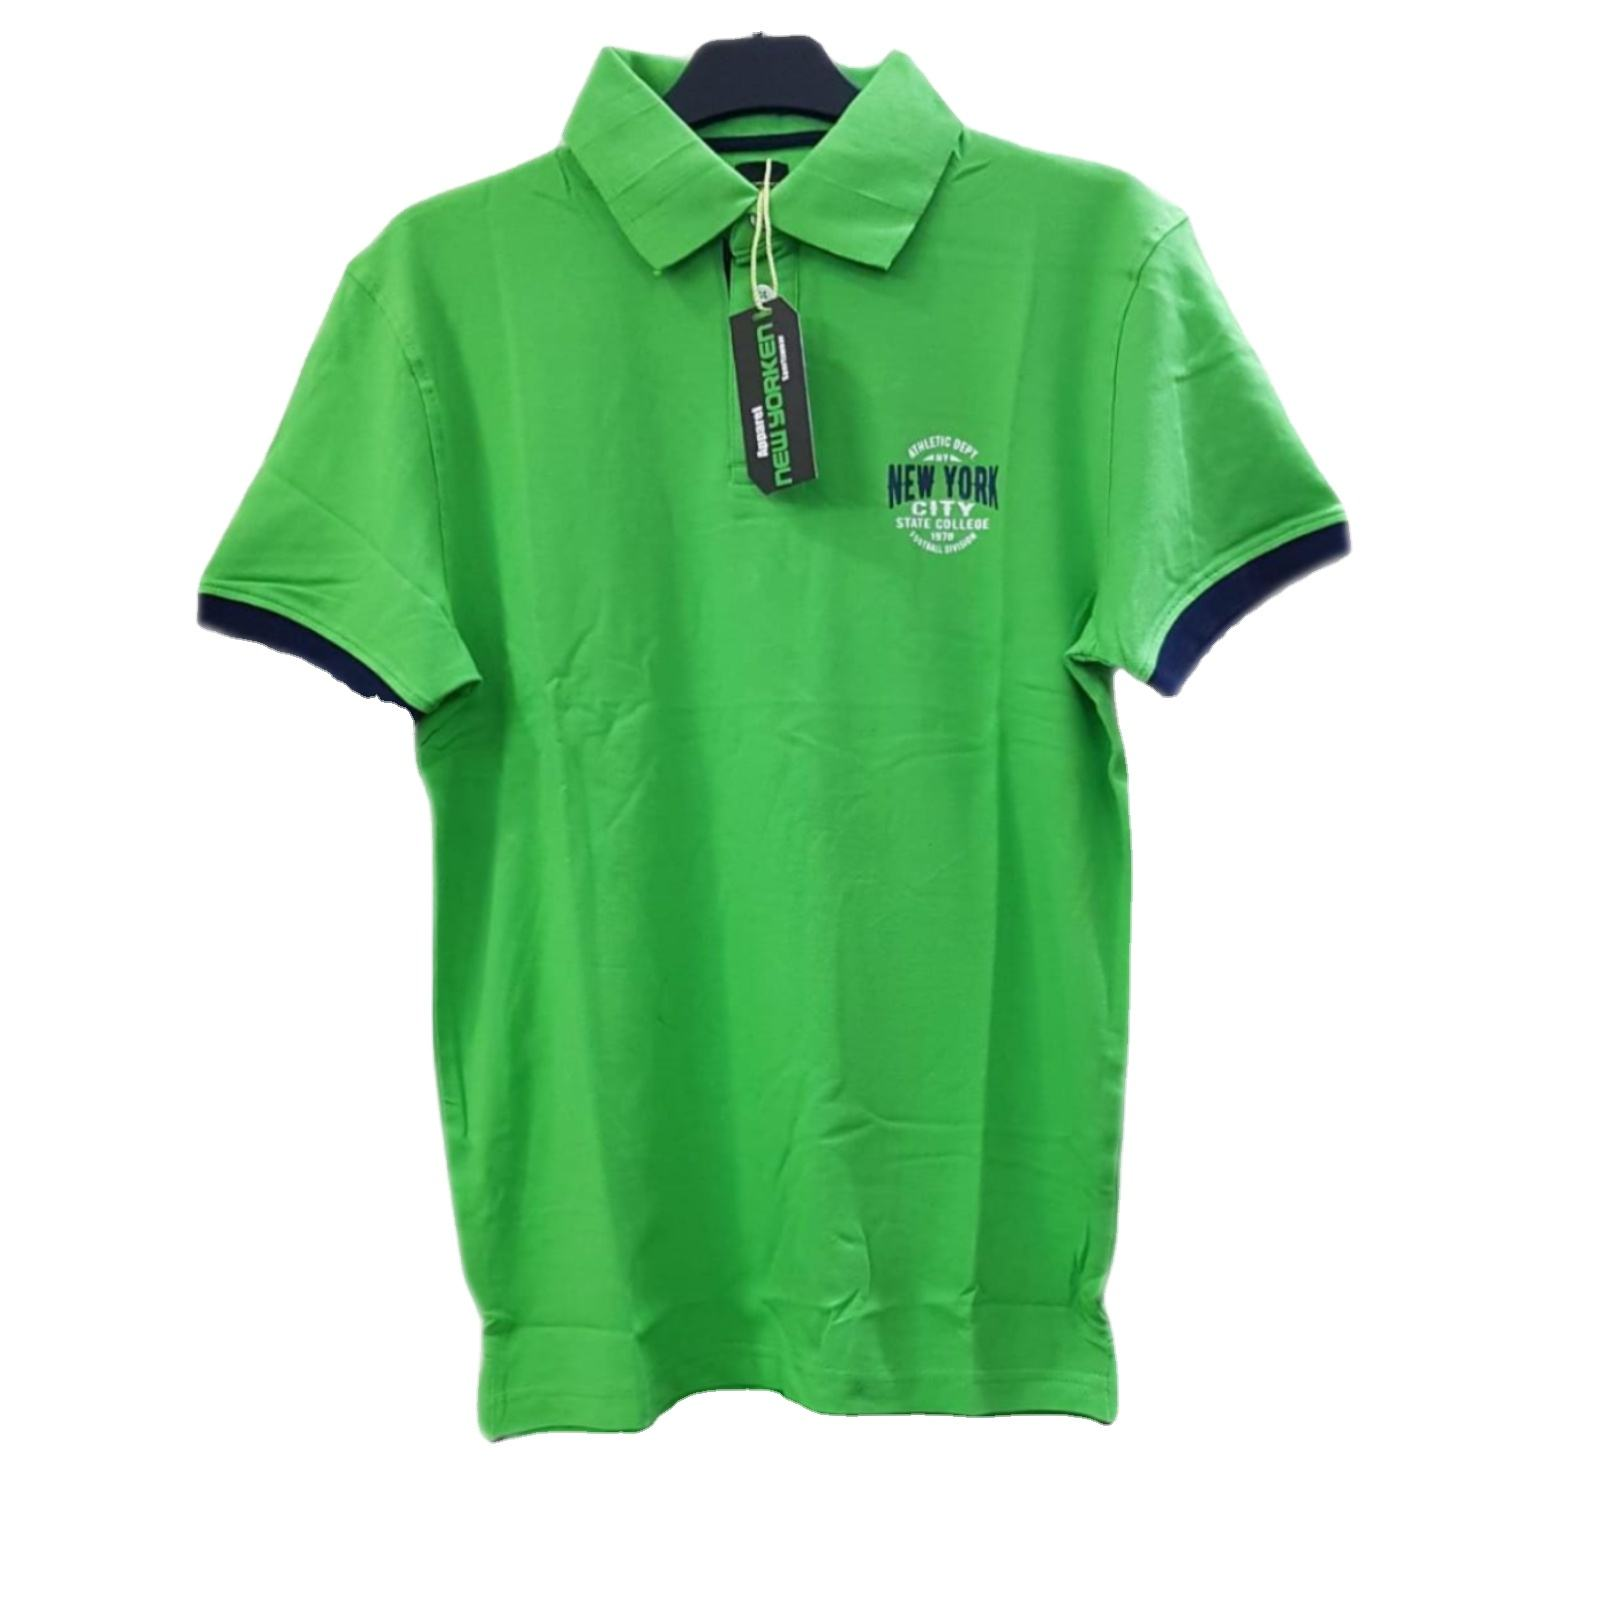 In Stock 100% Cotton Casual Men's Polo T- Shirt from Bangladesh